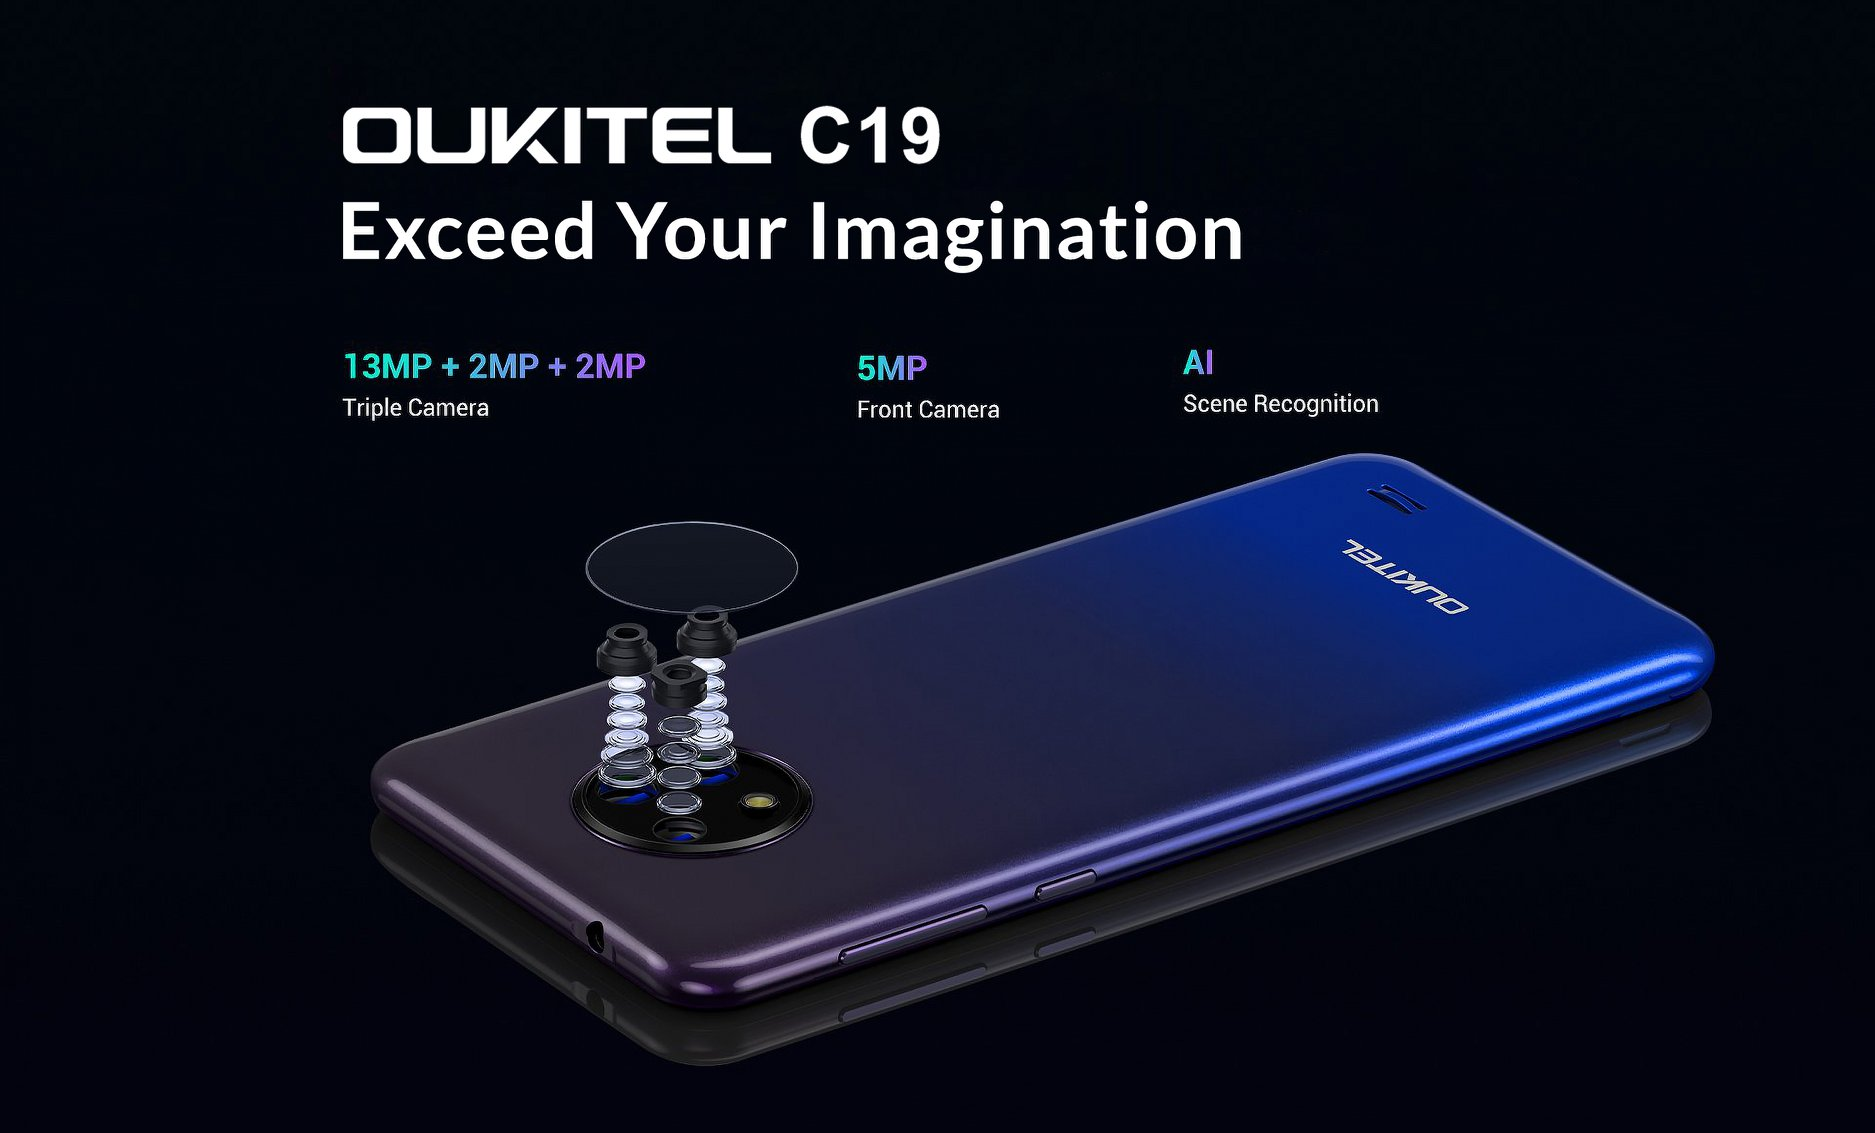 Capture brilliant photos with Triple rear cameras of #OUKITEL #C19 equipped with the Sony IMX214 sensor.😍 Global Sale of #OukitelC19 will start from July 13.